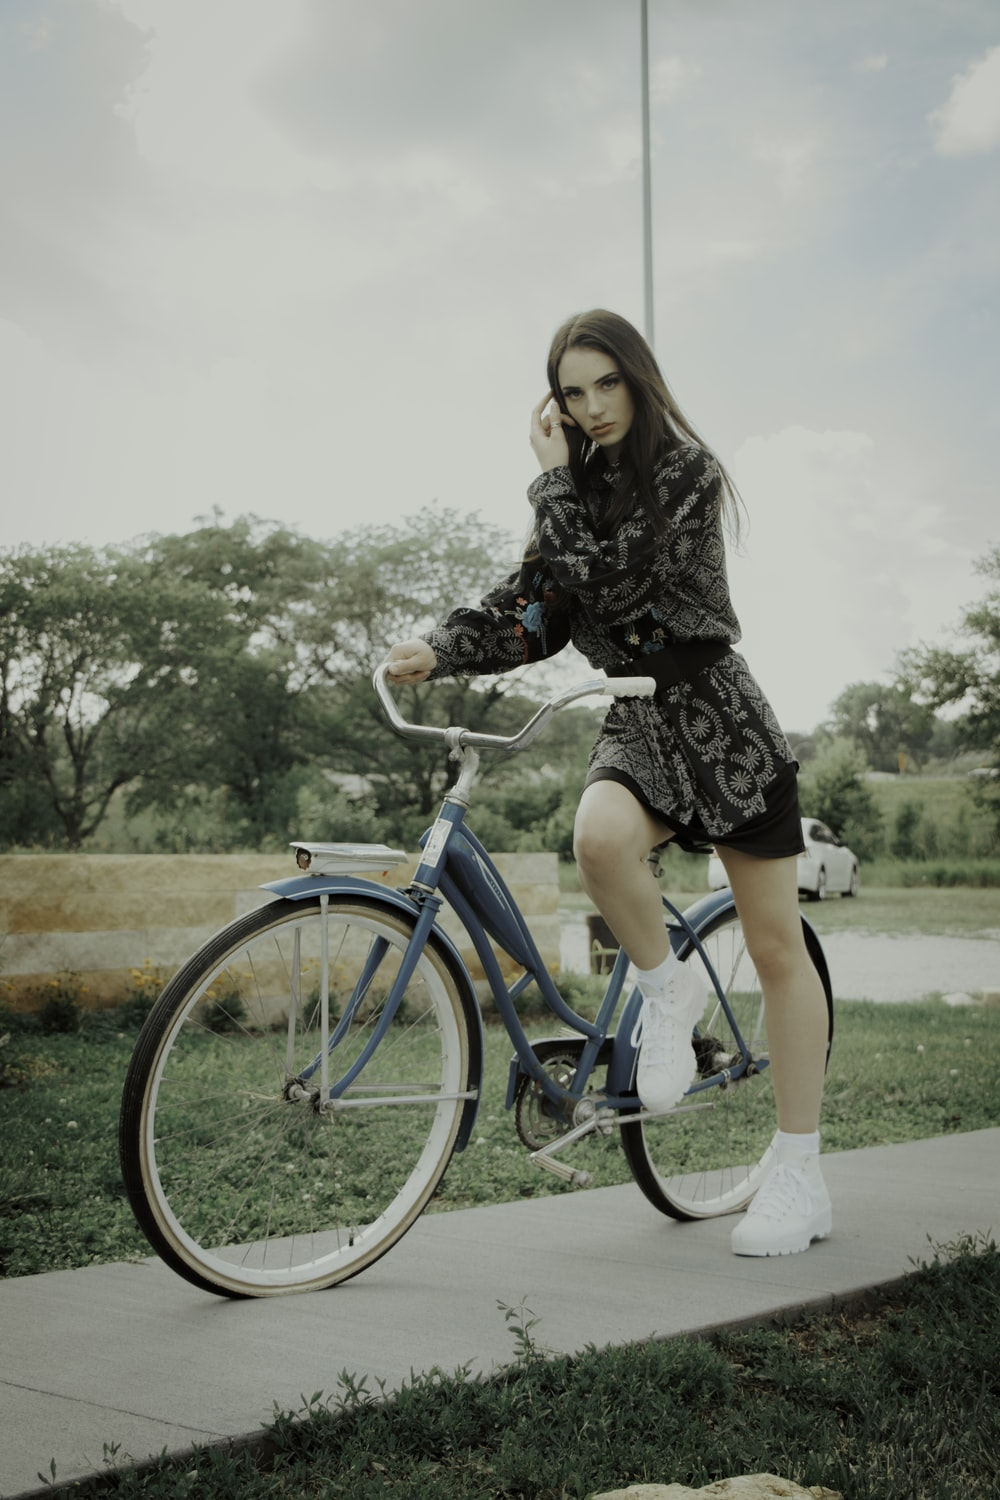 woman in black dress riding blue bicycle during daytime